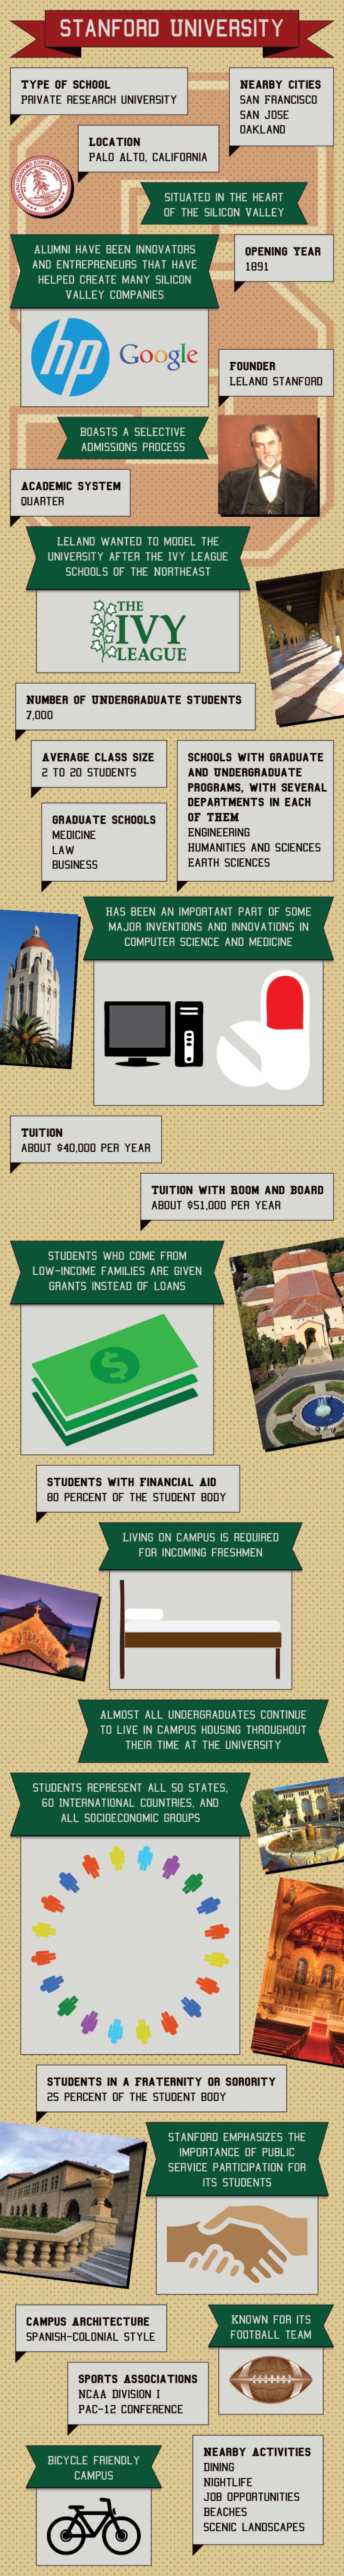 Dorm rooms at stanford stanford university infographic  stanford university phd regalia